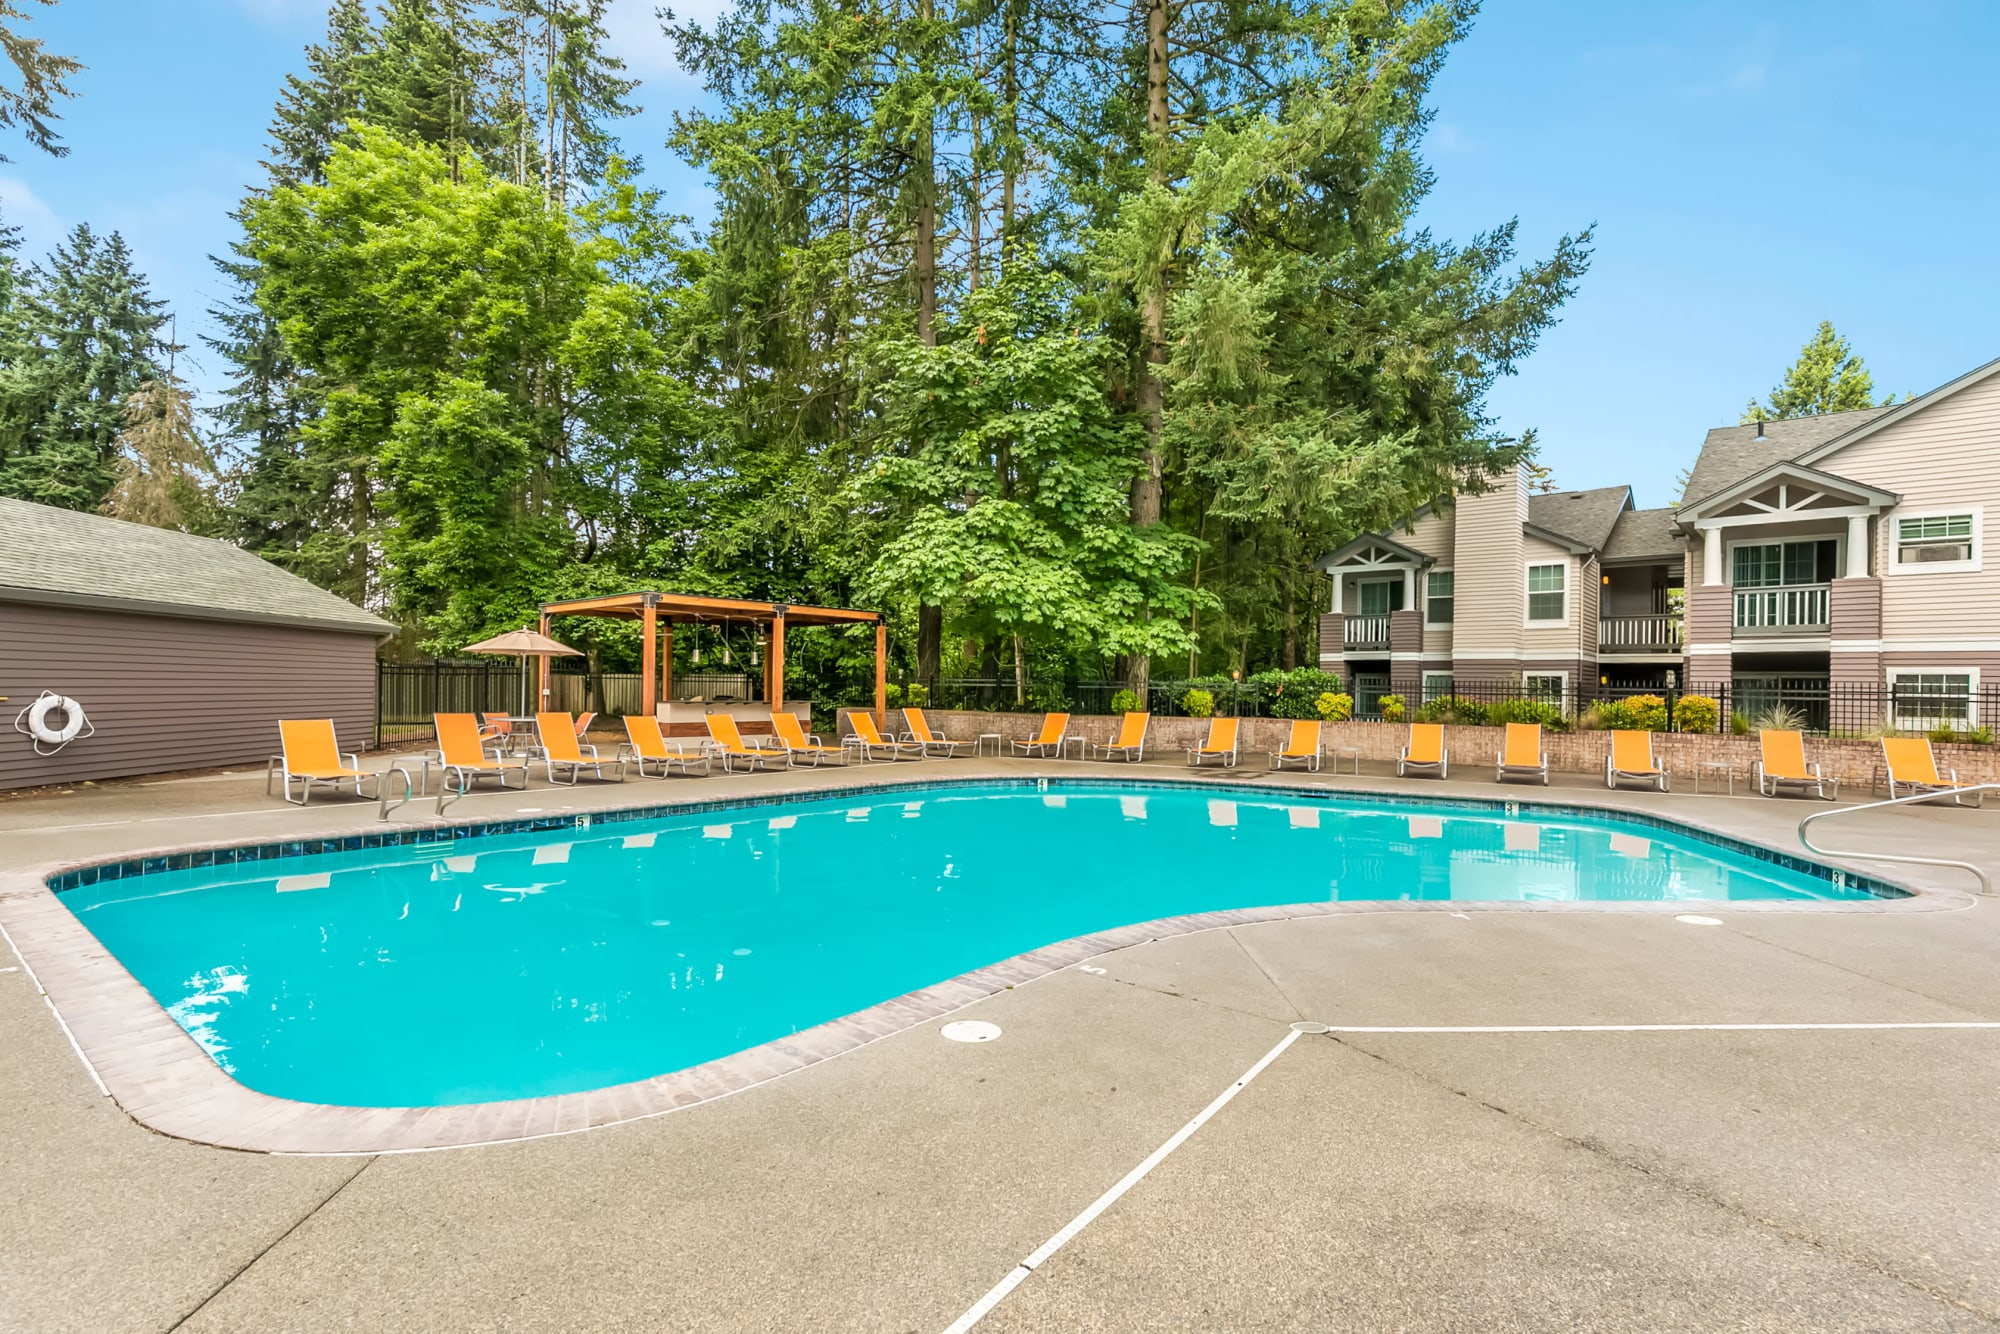 Bright blue pool with lots of seating and a covered barbecue area at Autumn Chase Apartments in Vancouver, Washington